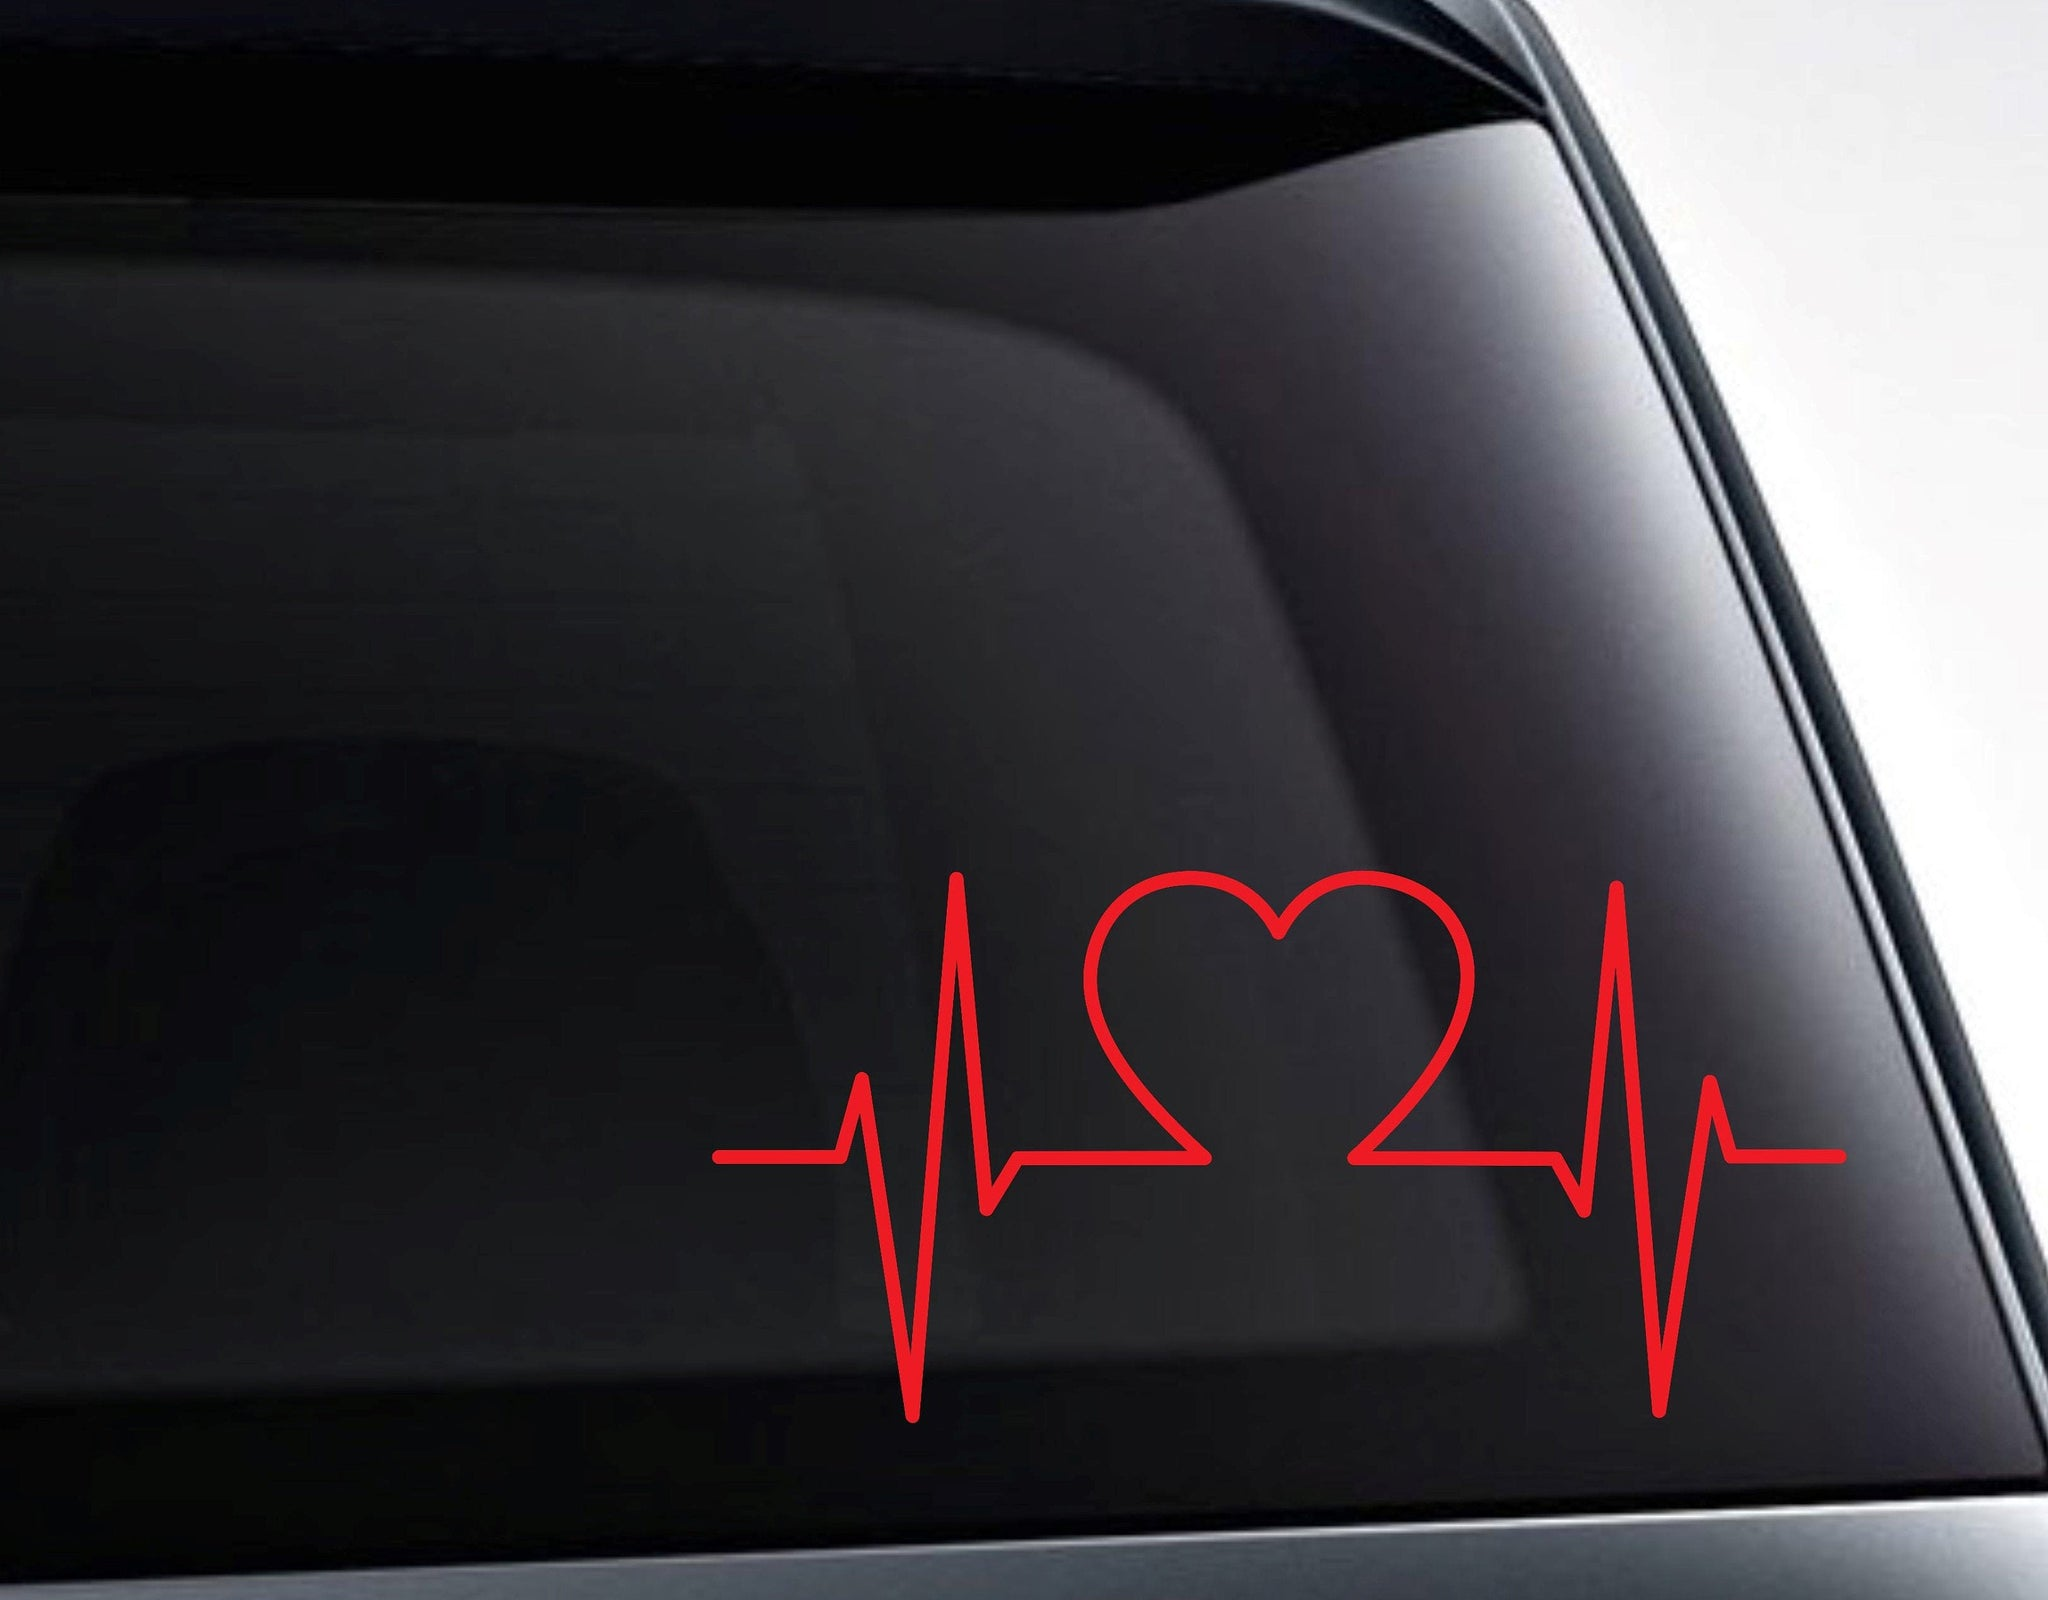 Heart EKG Heartbeat Vinyl Decal Sticker / Decals for Cars, Laptops, Tumblers and More